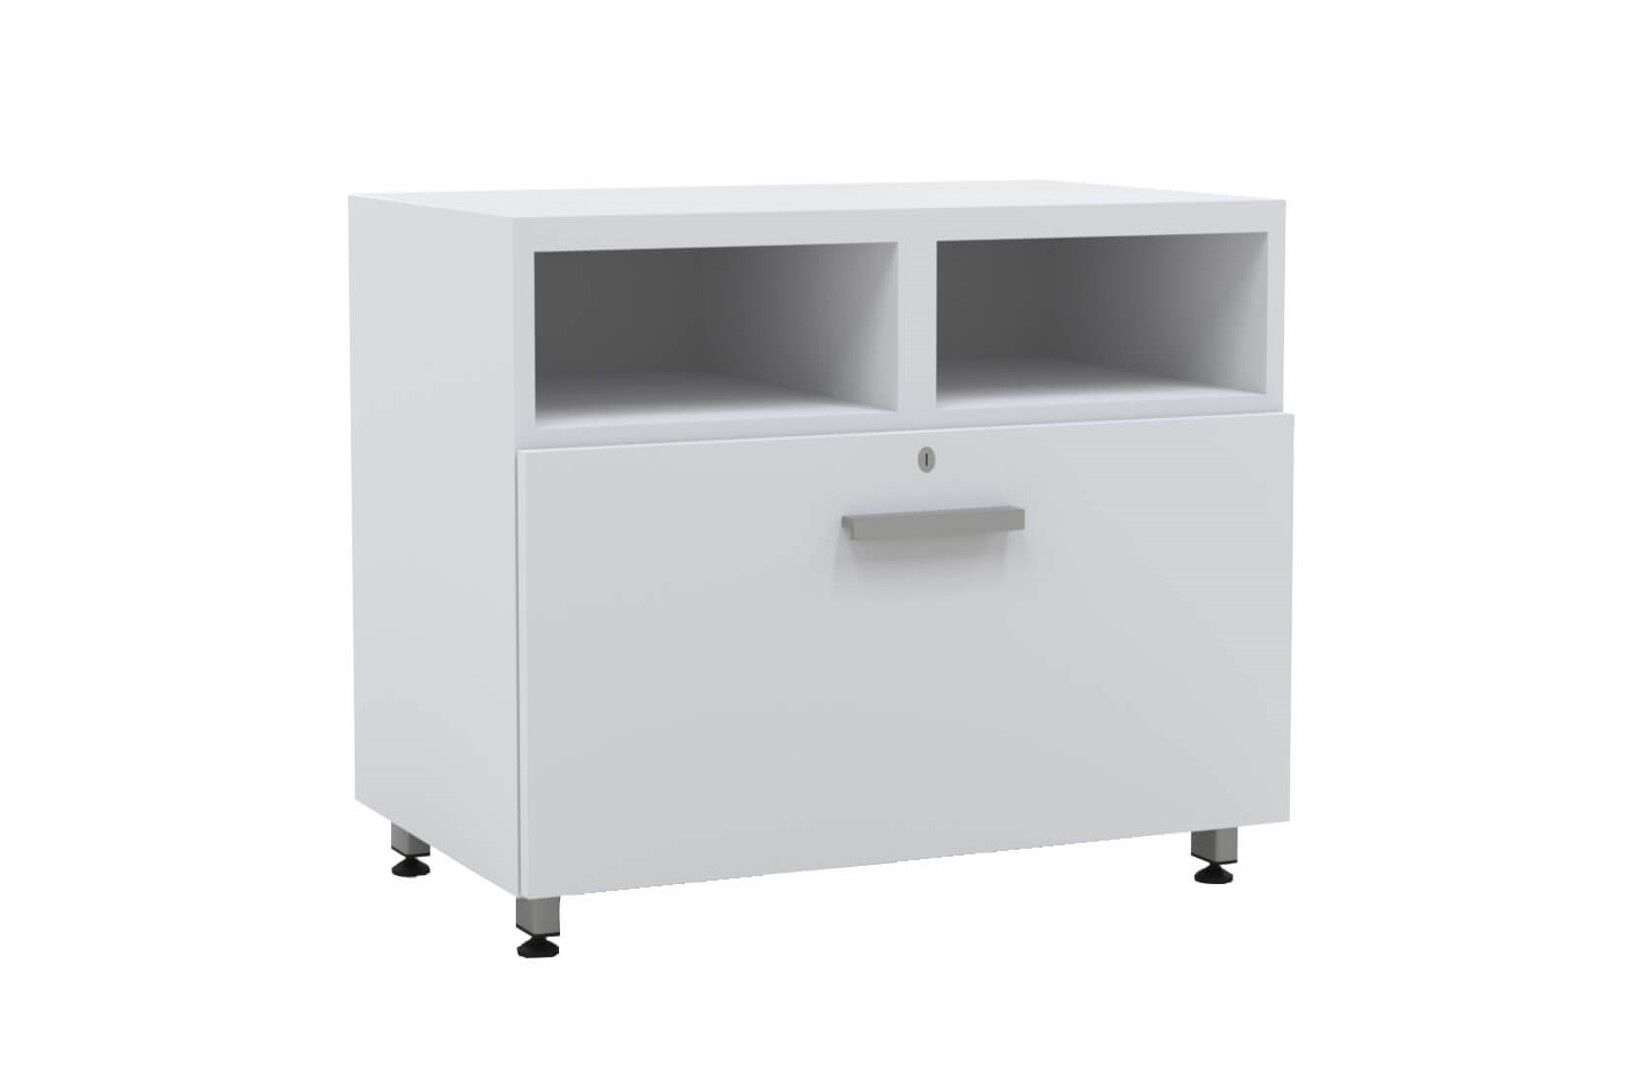 L shaped table desk lateral file white_preview